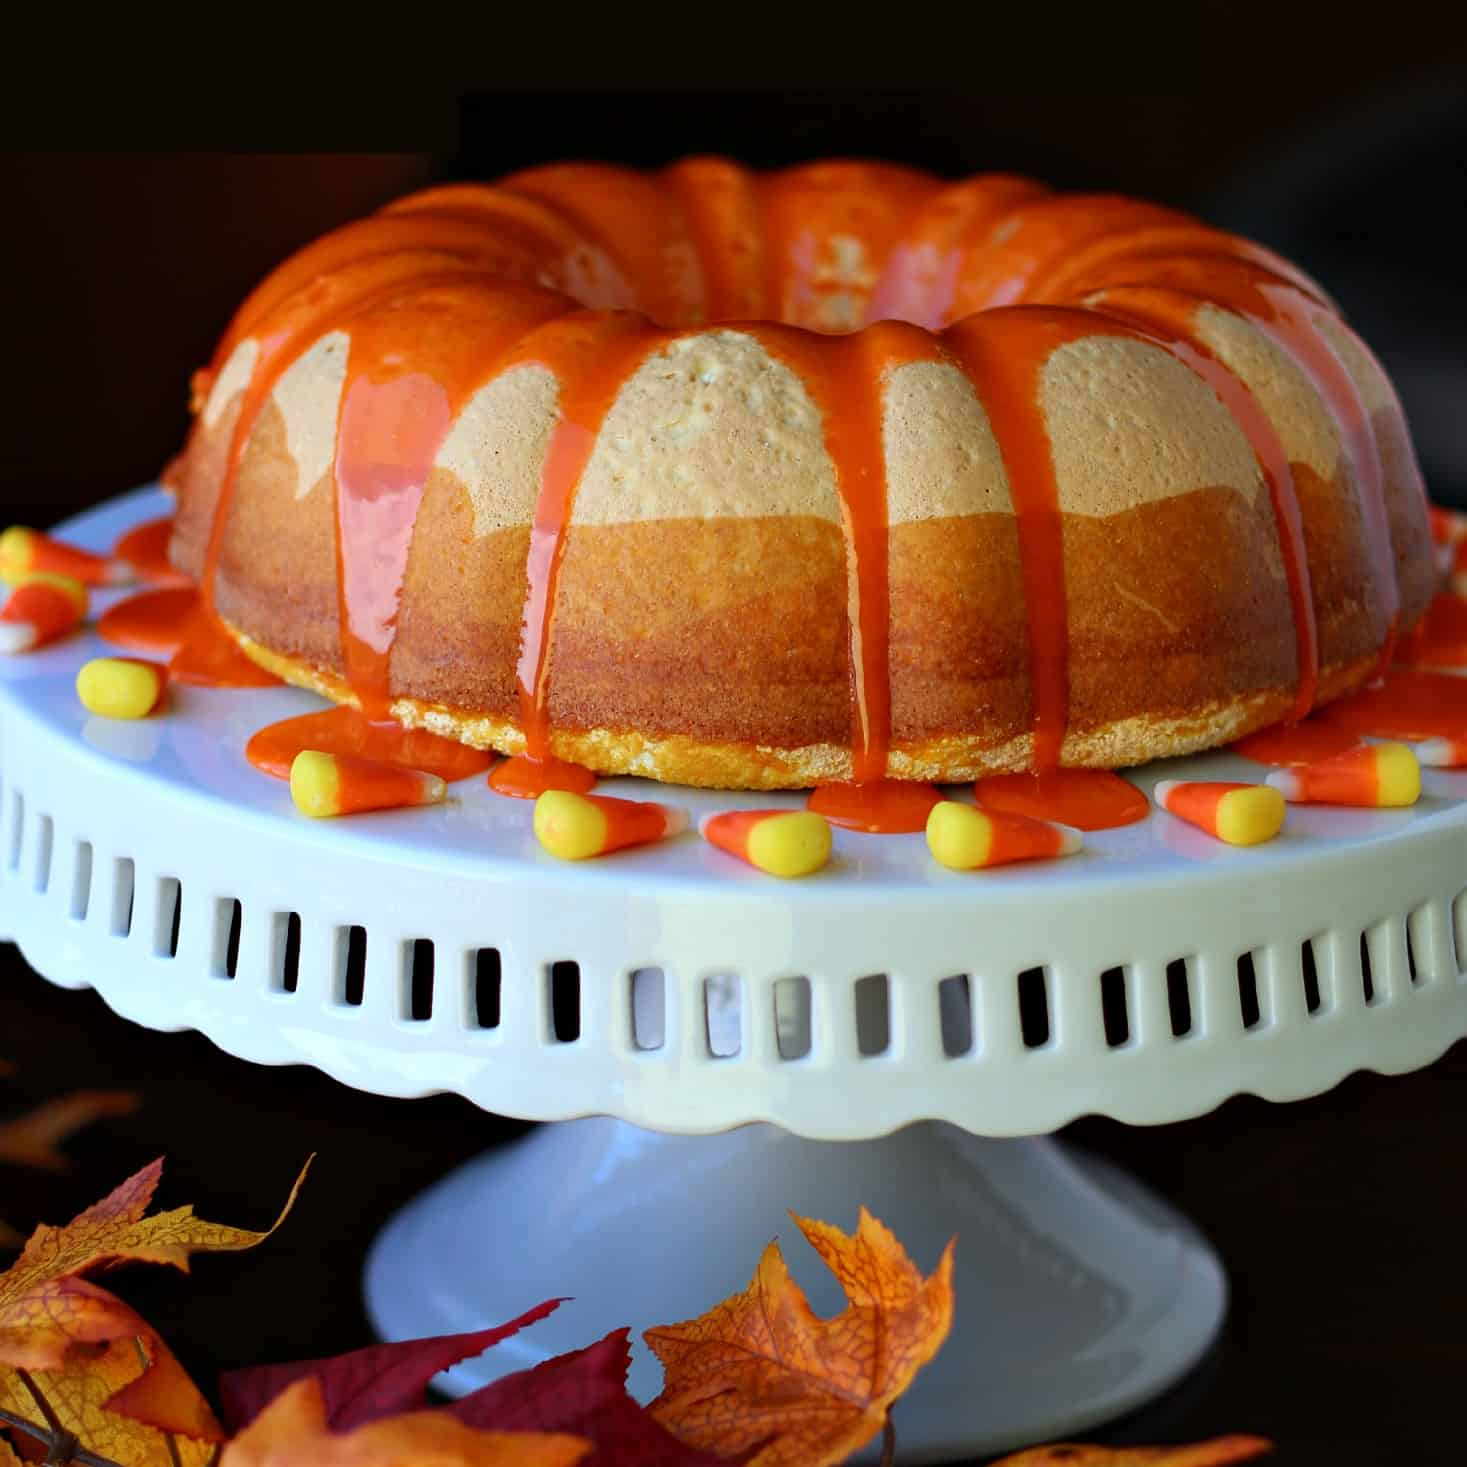 Candy Corn Bundt cake on a white cake platter